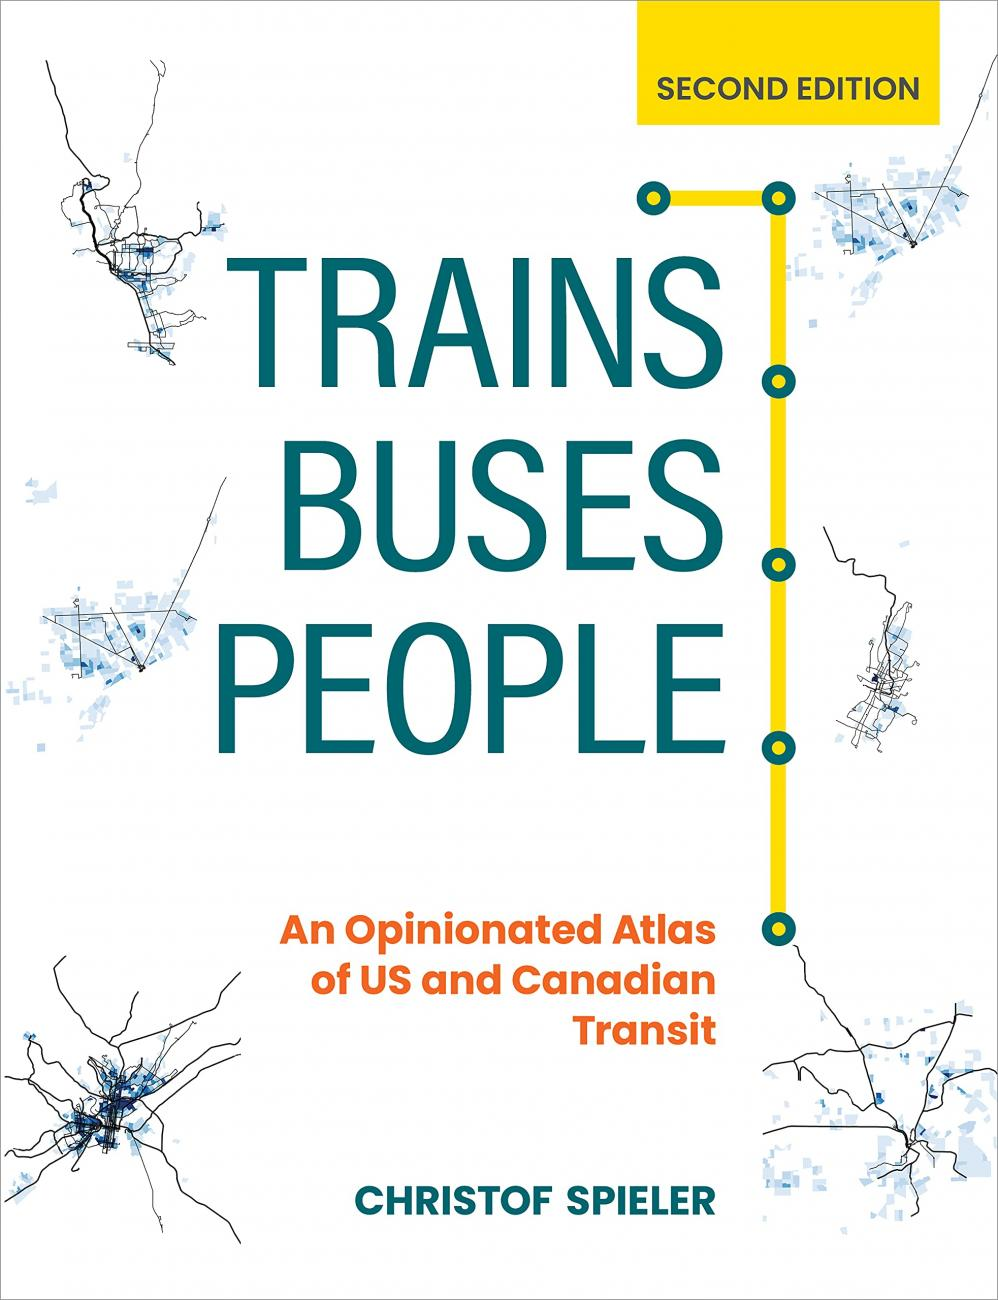 Trains, Buses, People, Second Edition: An Opinionated Atlas of the US and Canadian Transit (Island Press, 2021), Christof Spieler.